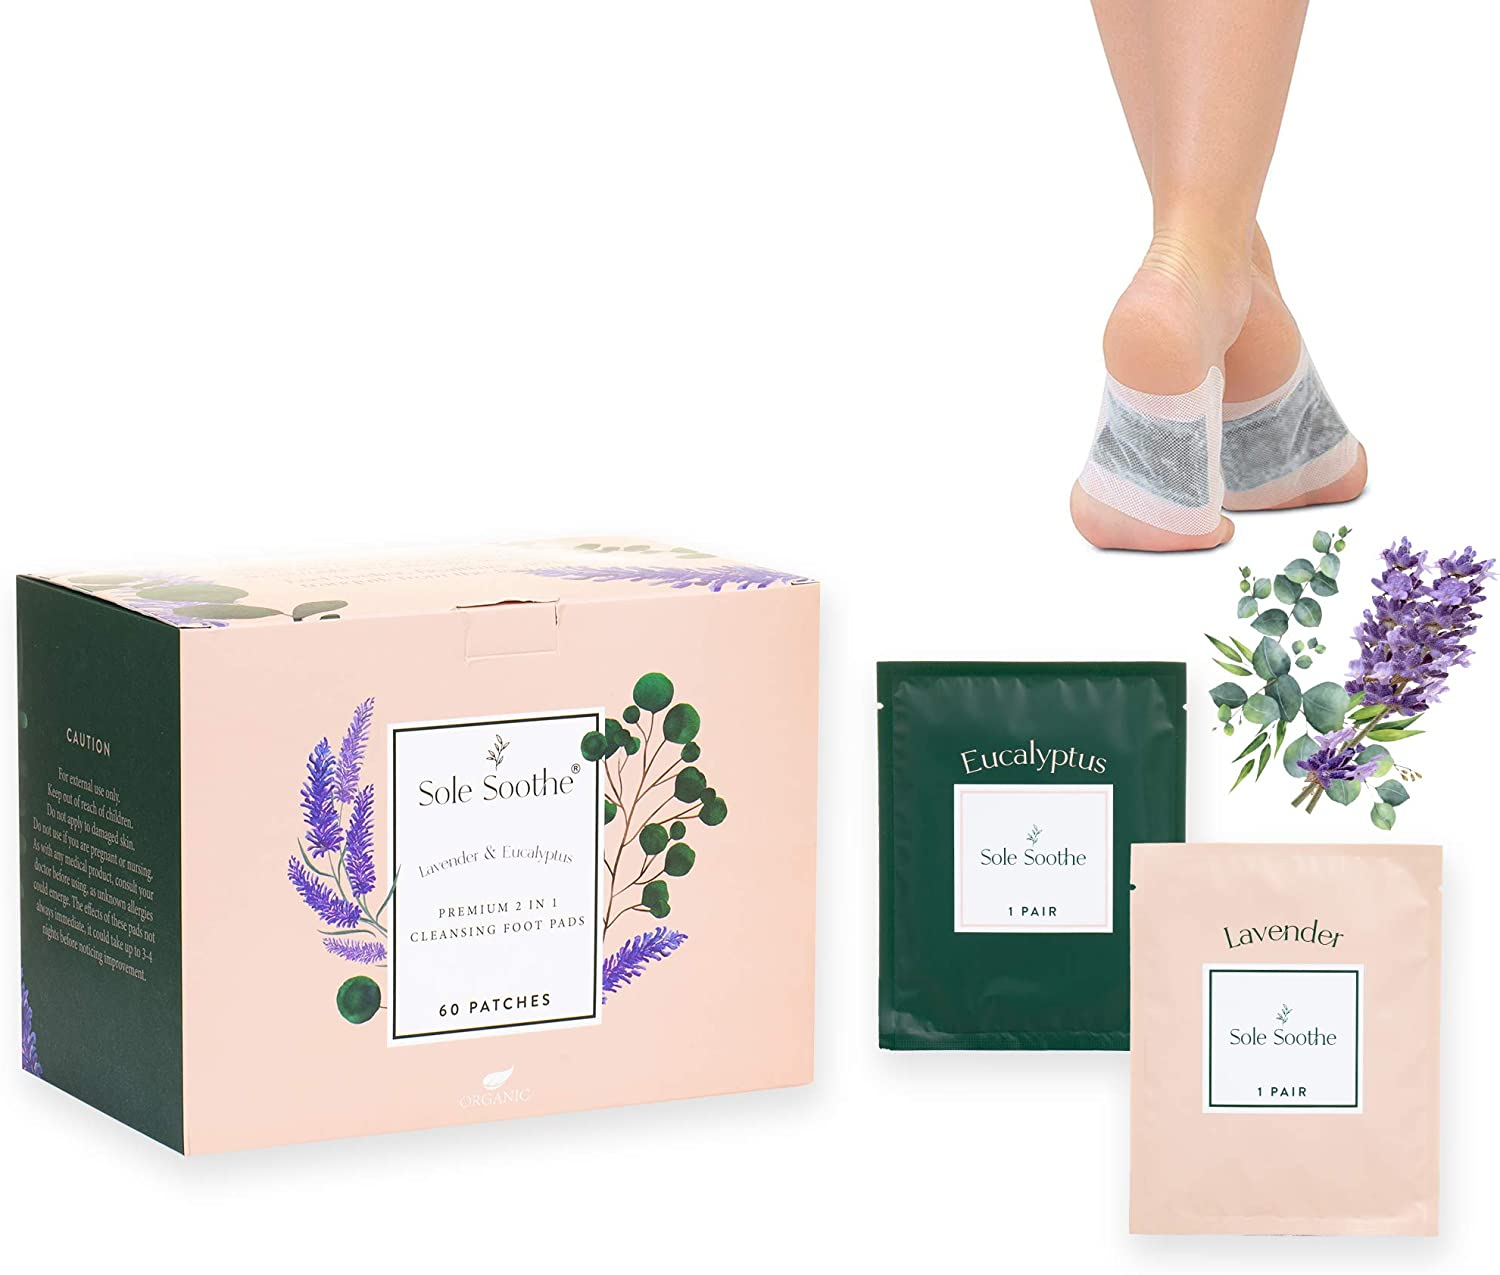 Sole Soothe Foot Pads Lavender Eucalyptus - All Natural Cleanse Feet Patches - Premium 2 in 1 Foot Care Pads Overnight Aromatherapy Treatment for Deep Sleep, Energy, Anti-Stress - 60 Foot Patches